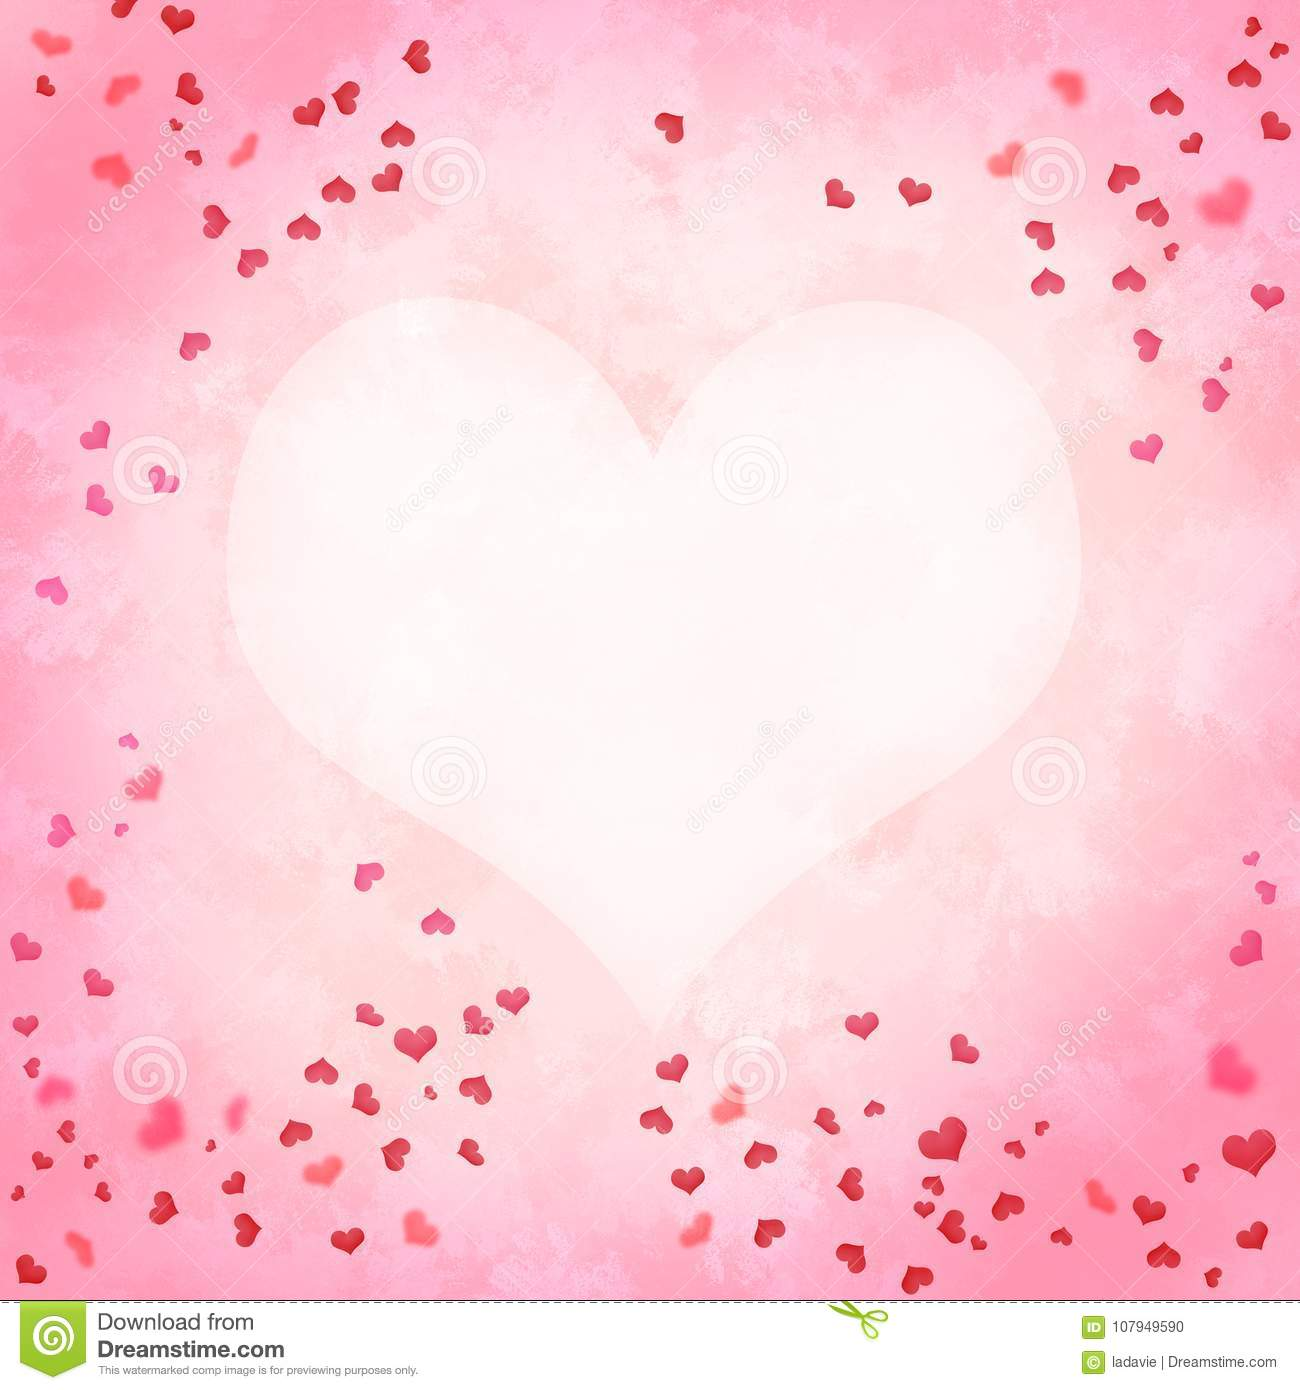 Valentines Day Love Background With Hearts Watercolor Painting